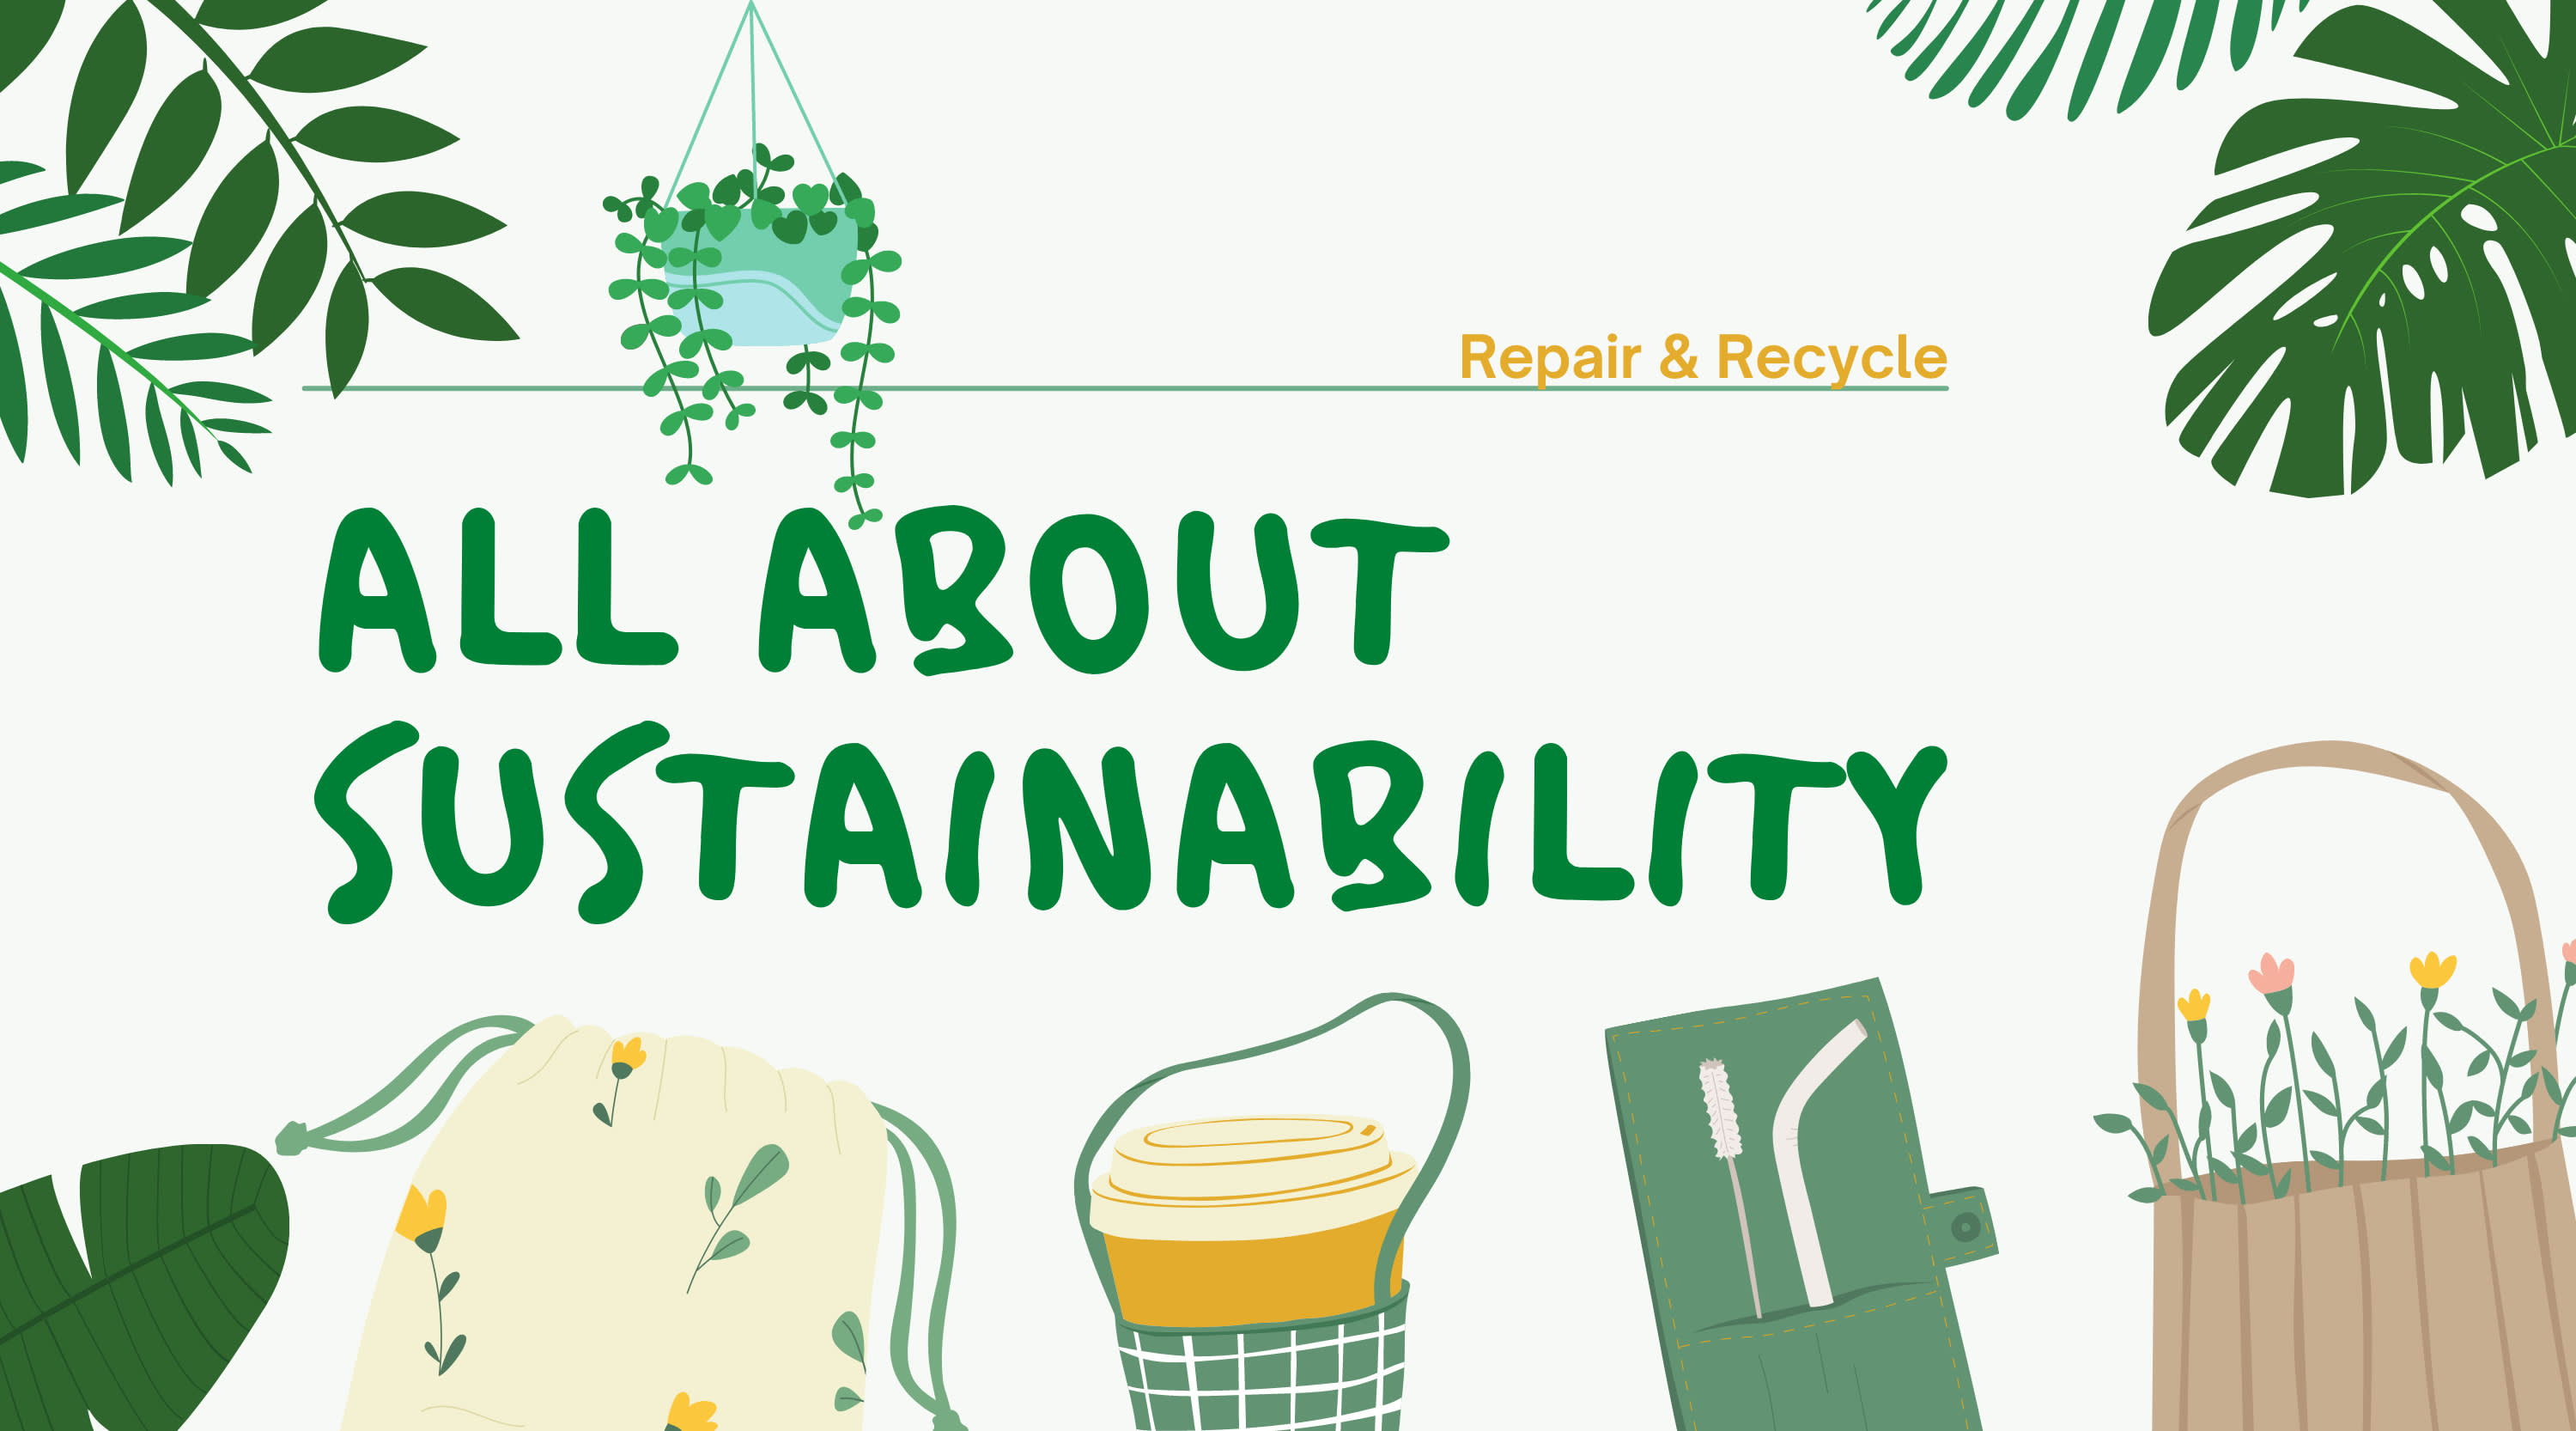 Repair & Recycle - All About Sustainability